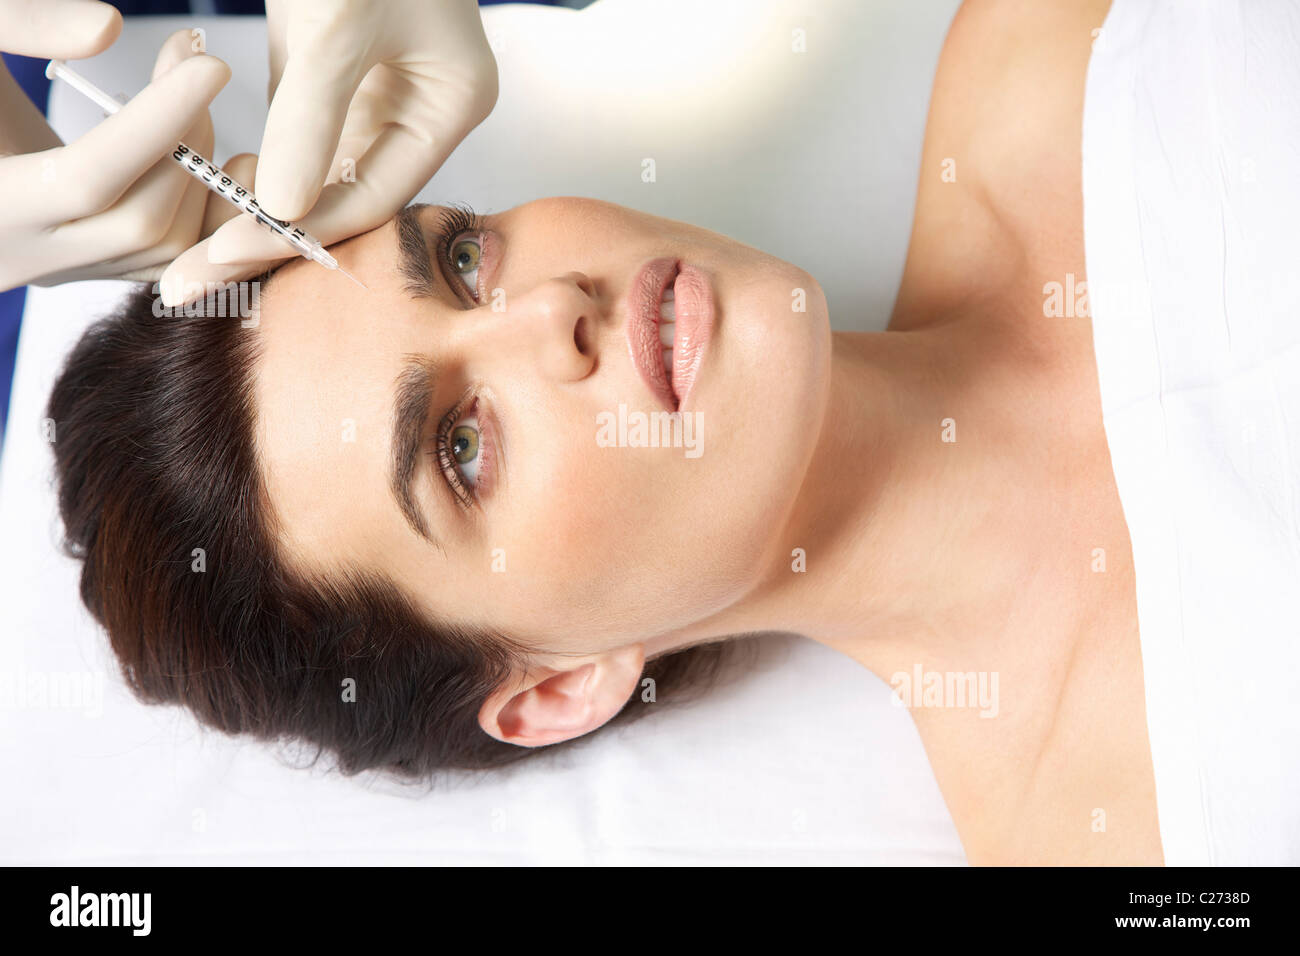 Woman Receiving Botox Injection on Forehead Banque D'Images